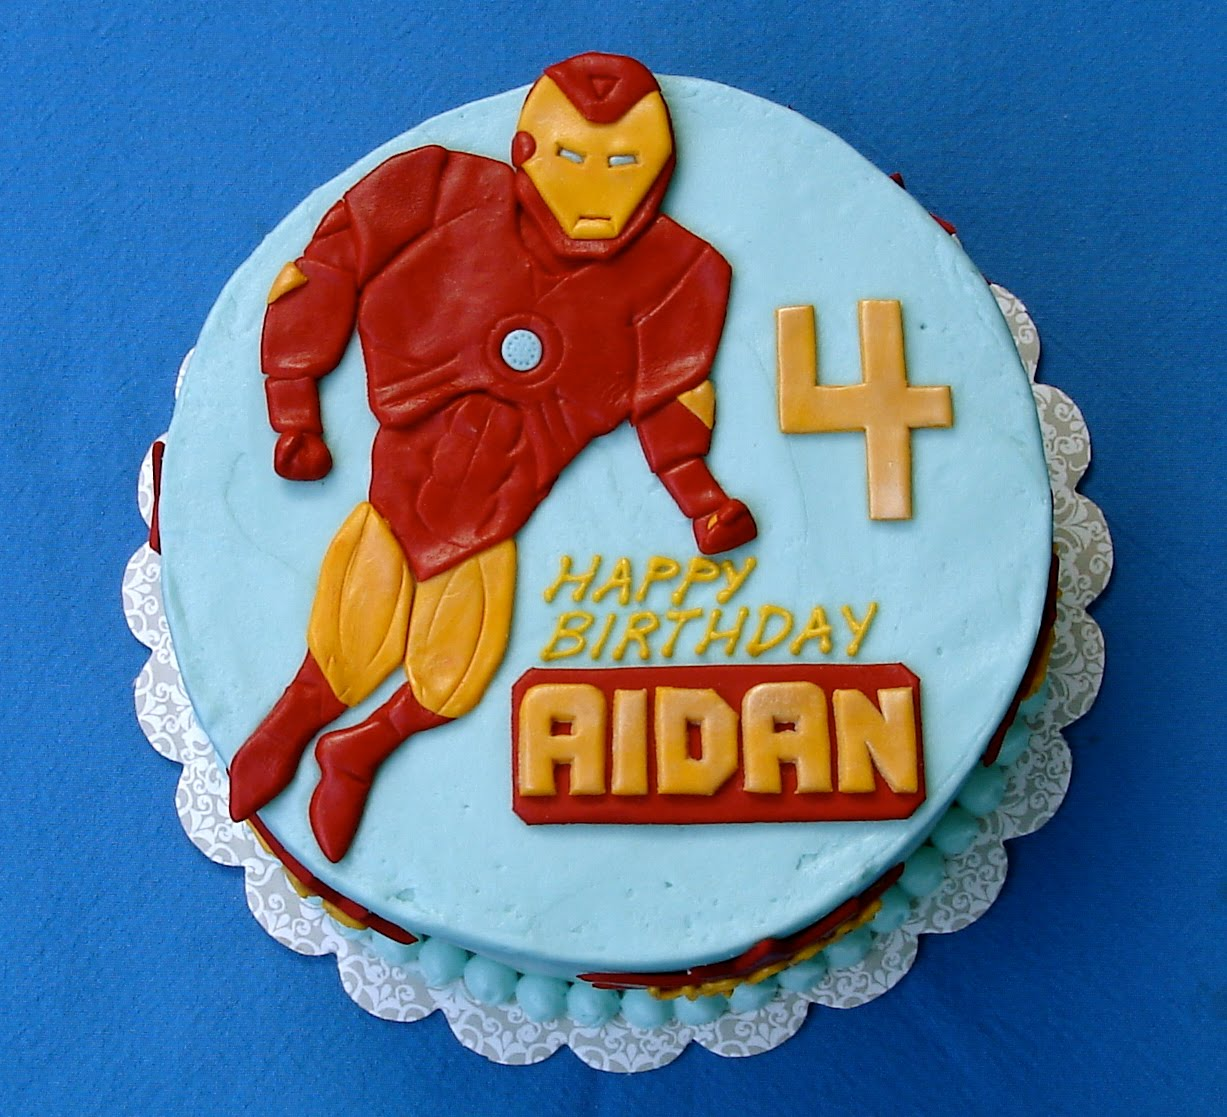 Images Of Iron Man Birthday Cakes : Susana s Cakes: Iron Man Birthday Cake